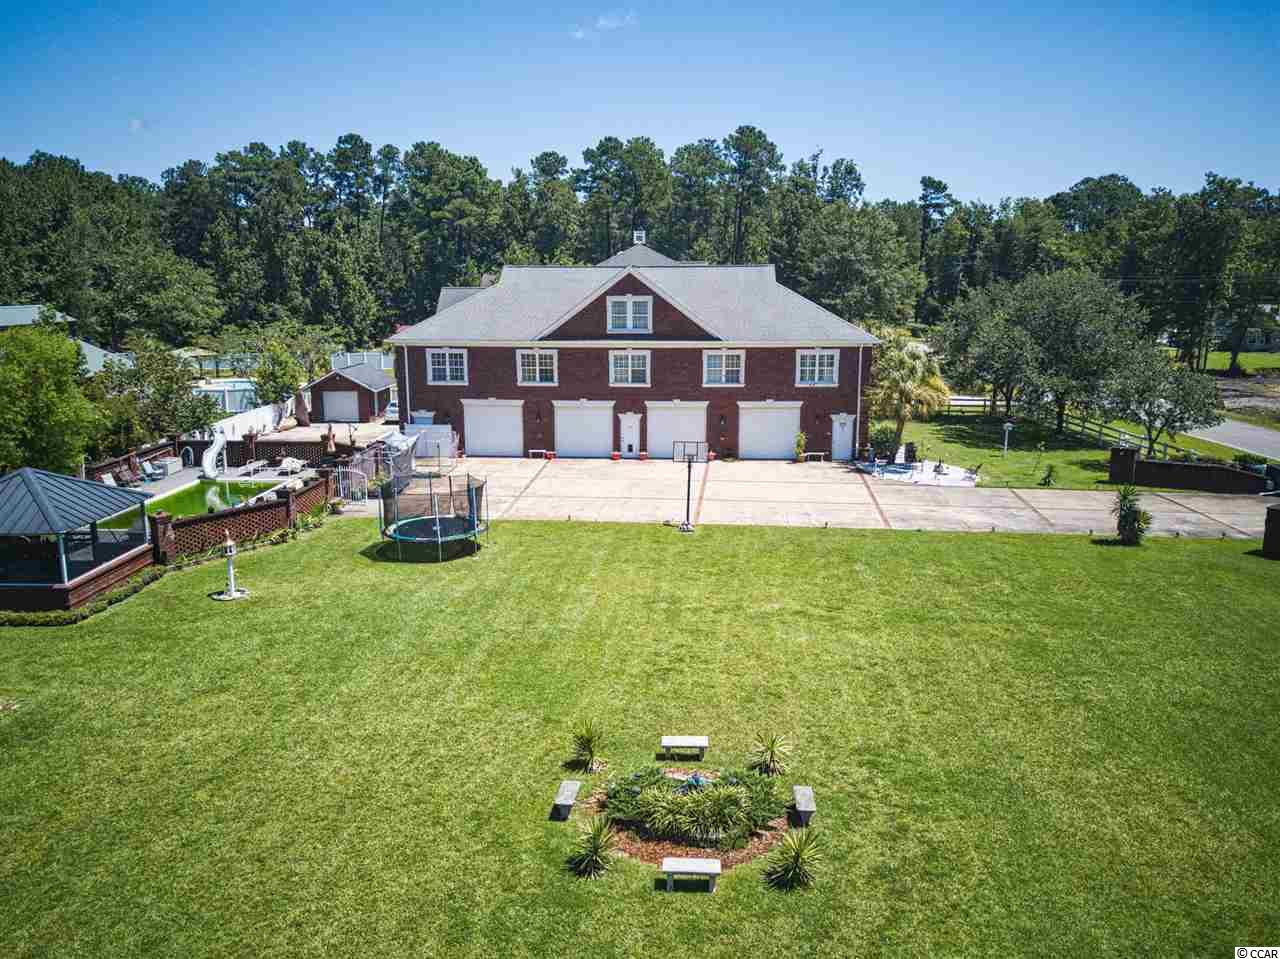 Private Mini Estate on over an acre of beautifully maintained grounds only 1/4  mile from public boat landing(Enterprise Landing)access to the Intracoastal Waterway!  Plenty of income-producing opportunities as well!  All brick home with a 7 car attached garage plus 1 single, detached garage and concrete area for boat or RV parking!  This home is not within a subdivision or governed by a homeowner's association so the garages could be rented out, or you could have your own business.  A mechanic or car enthusiast's dream!  Small studio apartment within garage that can be rented out or can be used for live-in groundskeeper.   This unique home has 3 bedrooms and 2 baths on the main living area, with 2 non-conforming bedrooms as well (good size rooms, but no closet).  The master bedroom is absolutely huge with two large walk-in closets, sitting area, double tray ceilings, and private master bath.  Master bath has deep tub/shower, double vanity, and ceramic floor. Large kitchen with oak cabinets, plenty of solid surface counter tops, ceramic back splash, stainless appliances (1 yr. old), gas stove (propane), kitchen island, recessed lighting, and ceramic flooring.  Small desk and built-in bar between kitchen and dining room.  Large dining room with wainscoting, hurricane shutters, and hardwood floors. (crystal chandelier does not convey but can be purchased).  Hardwoods in dining room, family room, master bedroom, 2 bedrooms, and hall.  Carpet in other 2 bedrooms.  There is a large attic with reinforced 2 x 6 trusses and hurricane straps.  Family room can be reached from 6' wide staircase at back of house (which makes moving in easy).  There is a 15' x 30' fiberglass, in-ground pool with stamped concrete decking and outdoor shower.  New pool motor, pump, and skimmer this year.  Large pool house with brick floor, copper roof and outdoor flat screen TV. There is also a brick outdoor kitchen on the pool patio.  The single, detached brick garage at side of house has finished